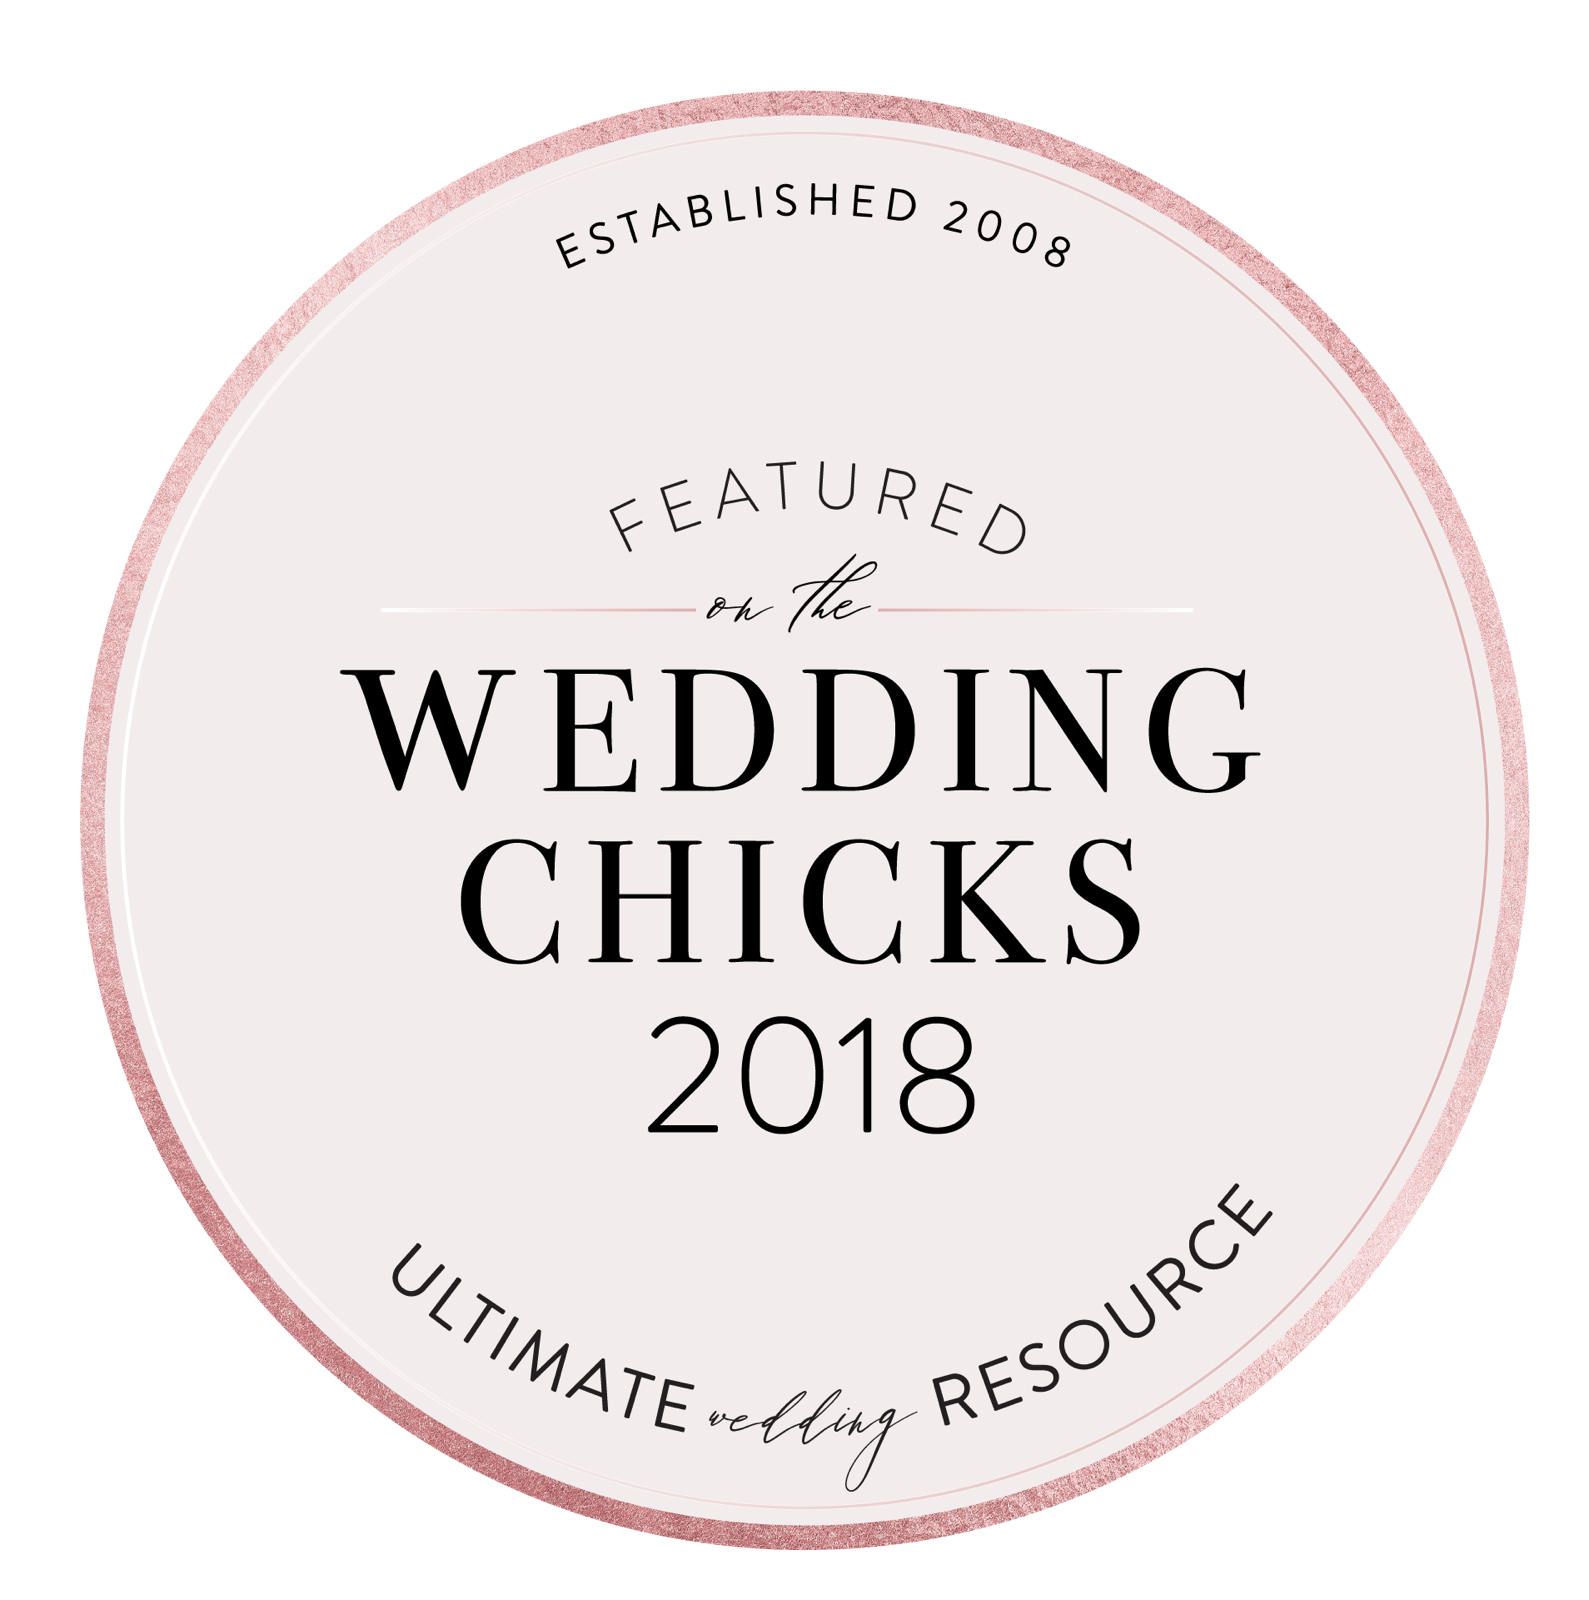 The Wedding Chicks Feature Badge Publication